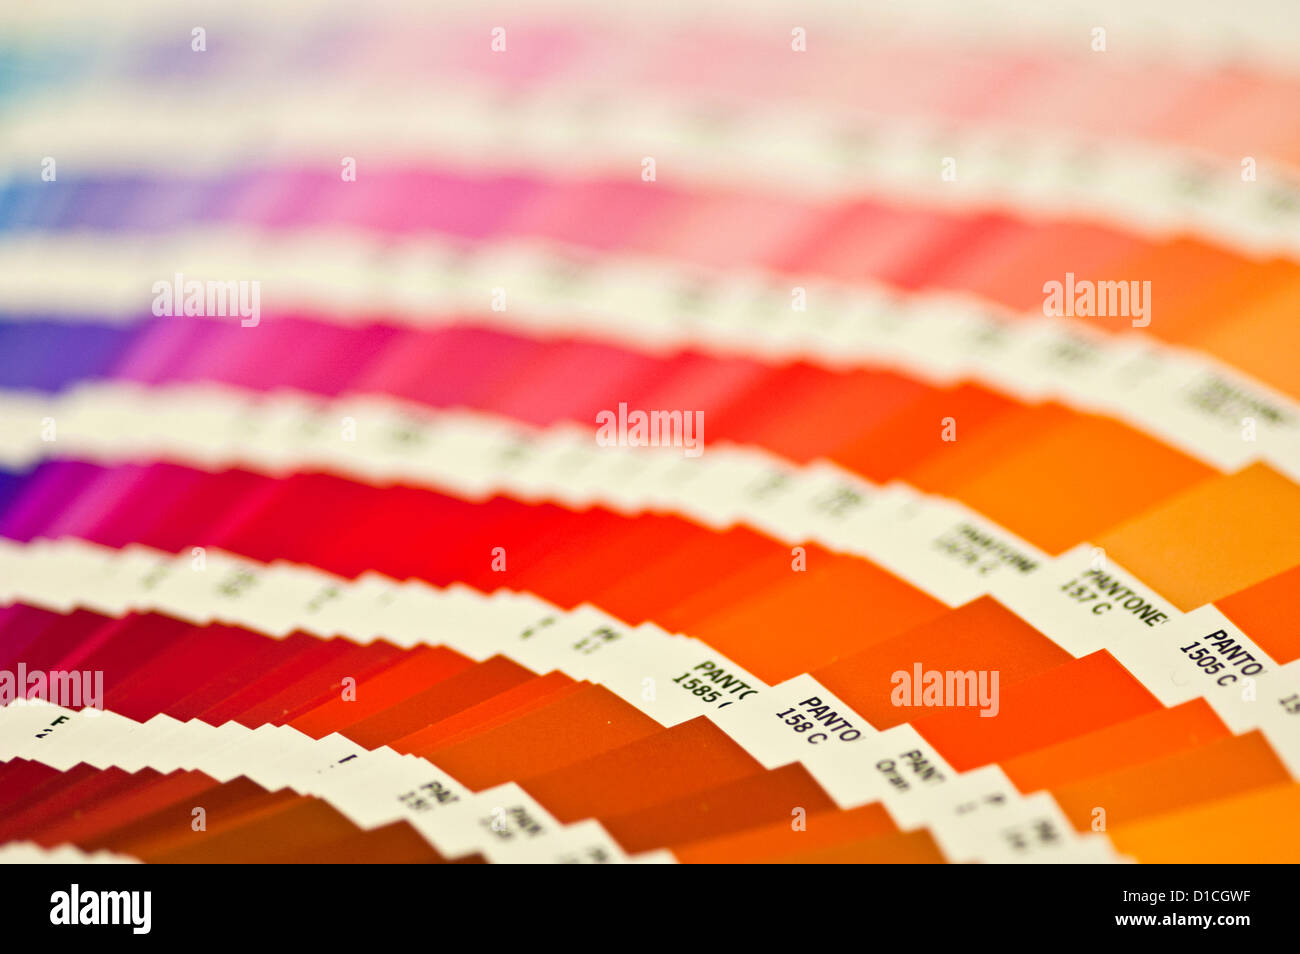 Pantone color swatchbook Stock Photo: 52522443 - Alamy